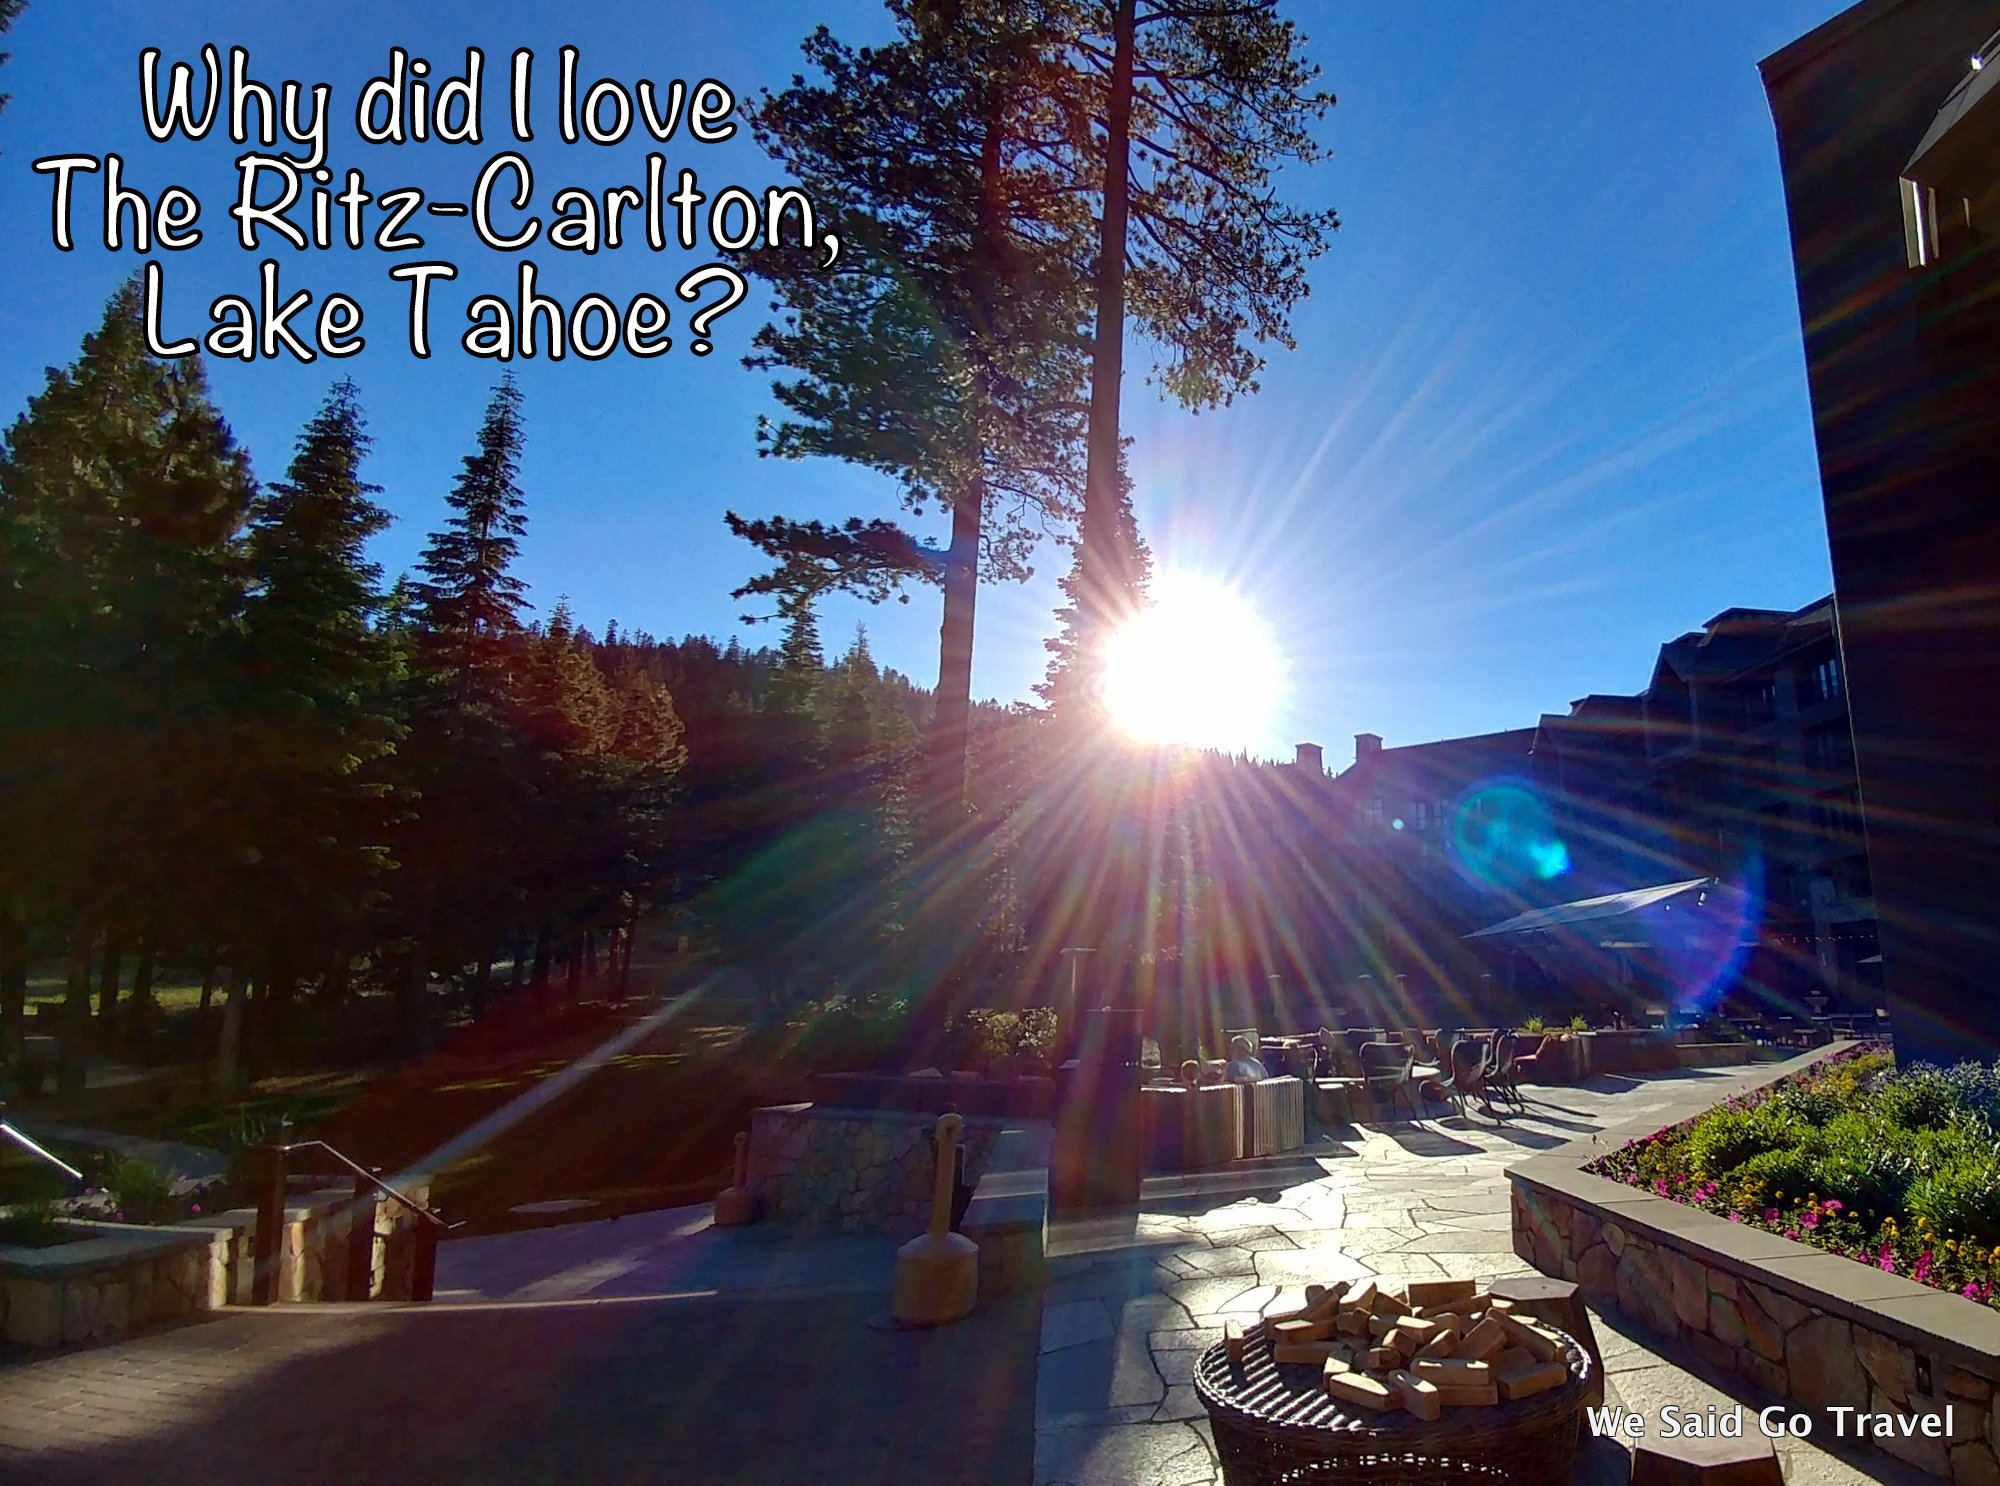 Why did I love The Lake Club at The Ritz-Carlton, Lake Tahoe?